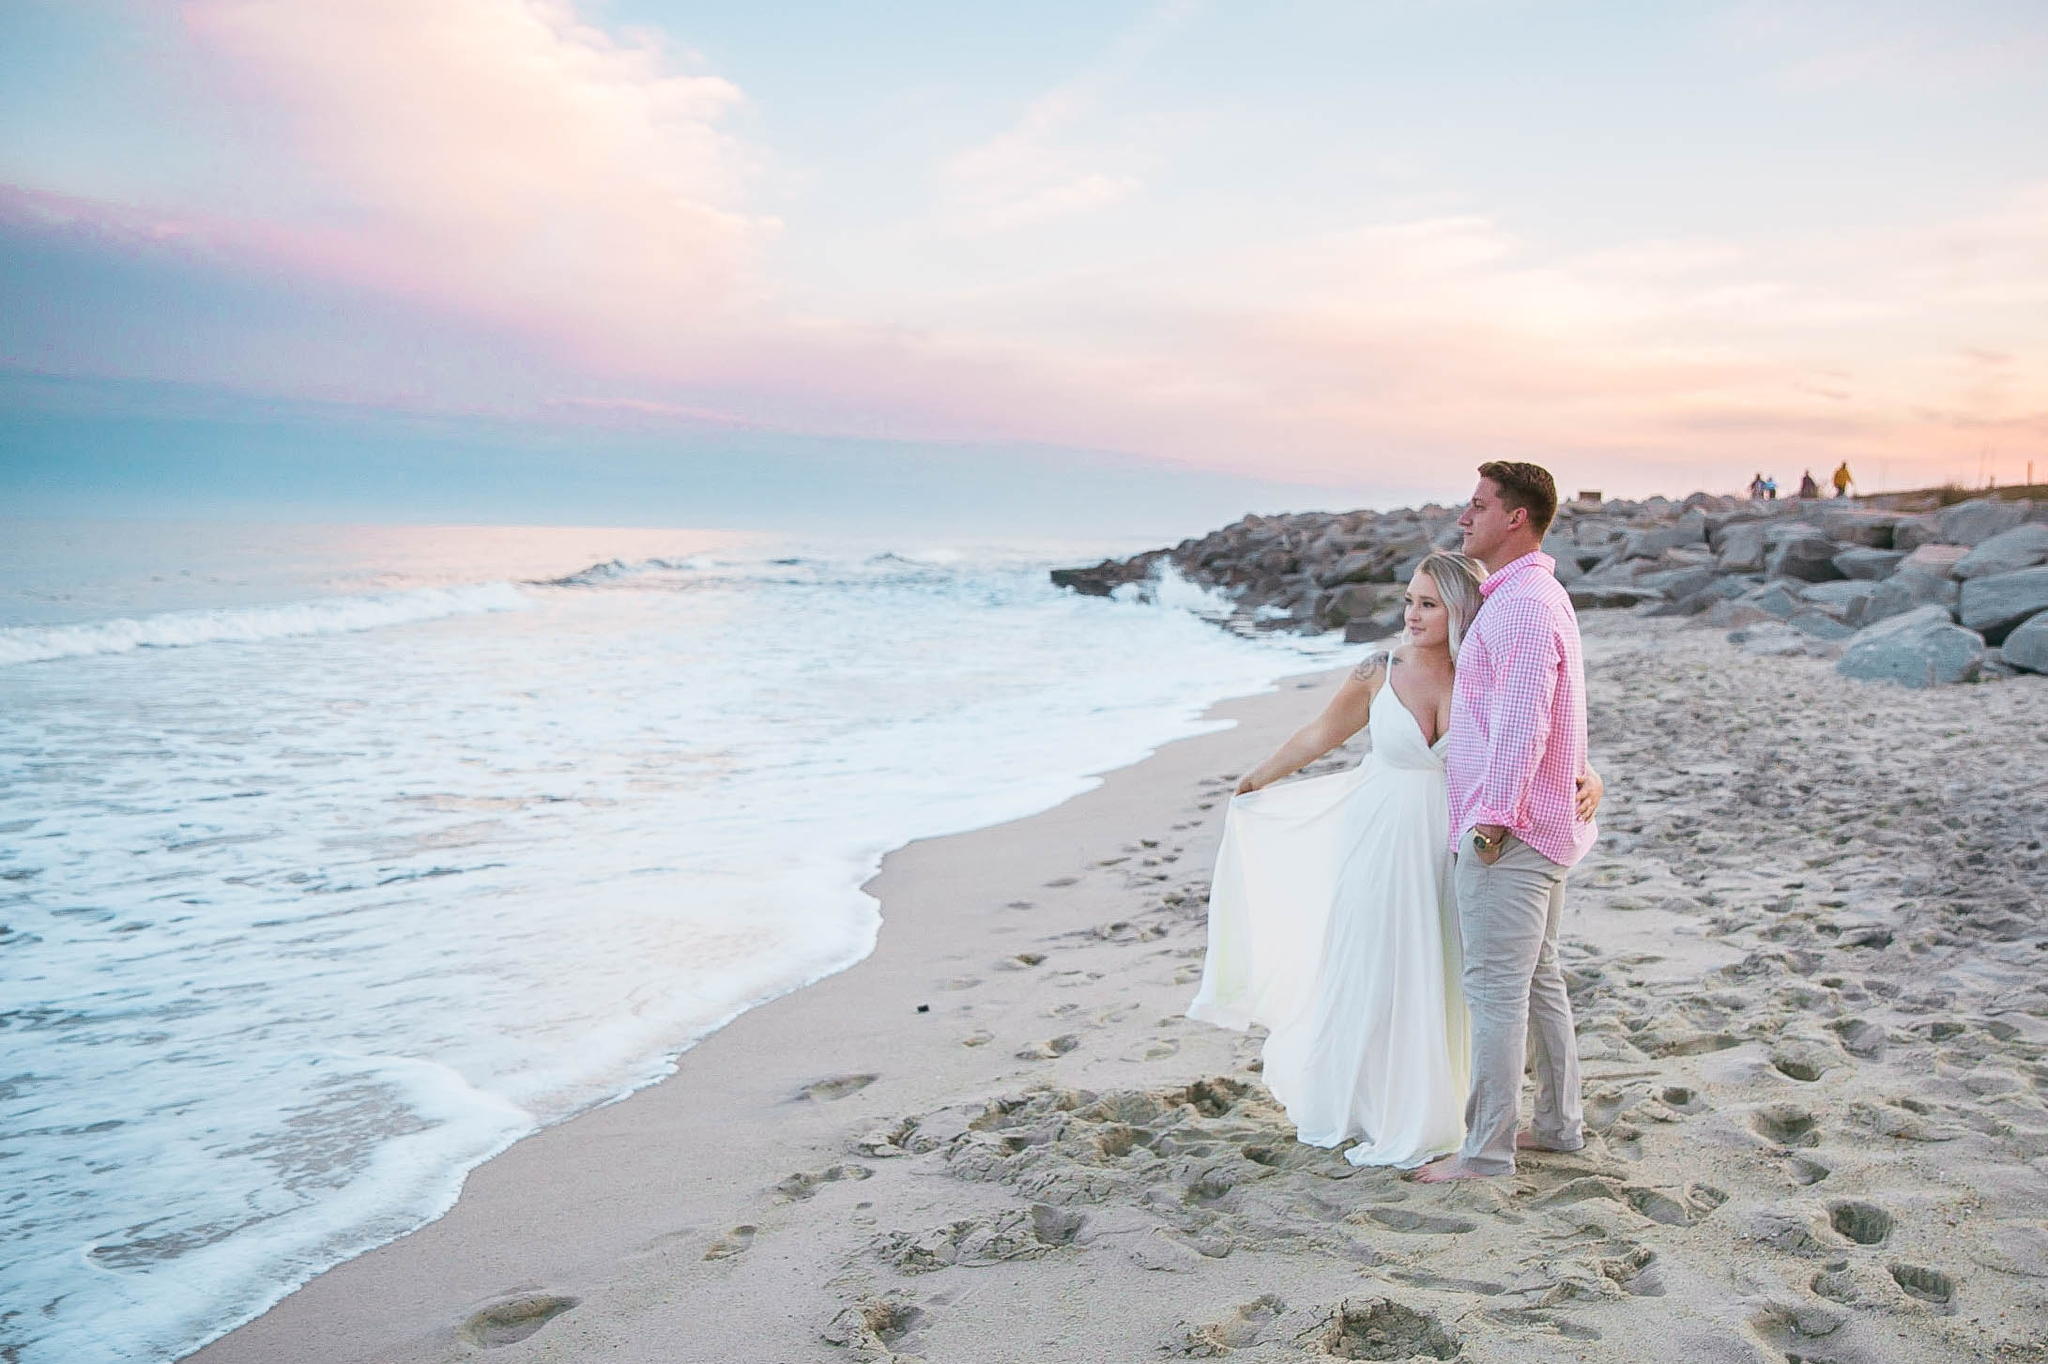 Romantic Engagement Photography Session at the beach during sunset with a cotton candy sky - couple is looking at the ocean while standing in the sand - girl is wearing a white flowy maxi dress from lulus - Honolulu Oahu Hawaii Wedding Photographer - Johanna Dye